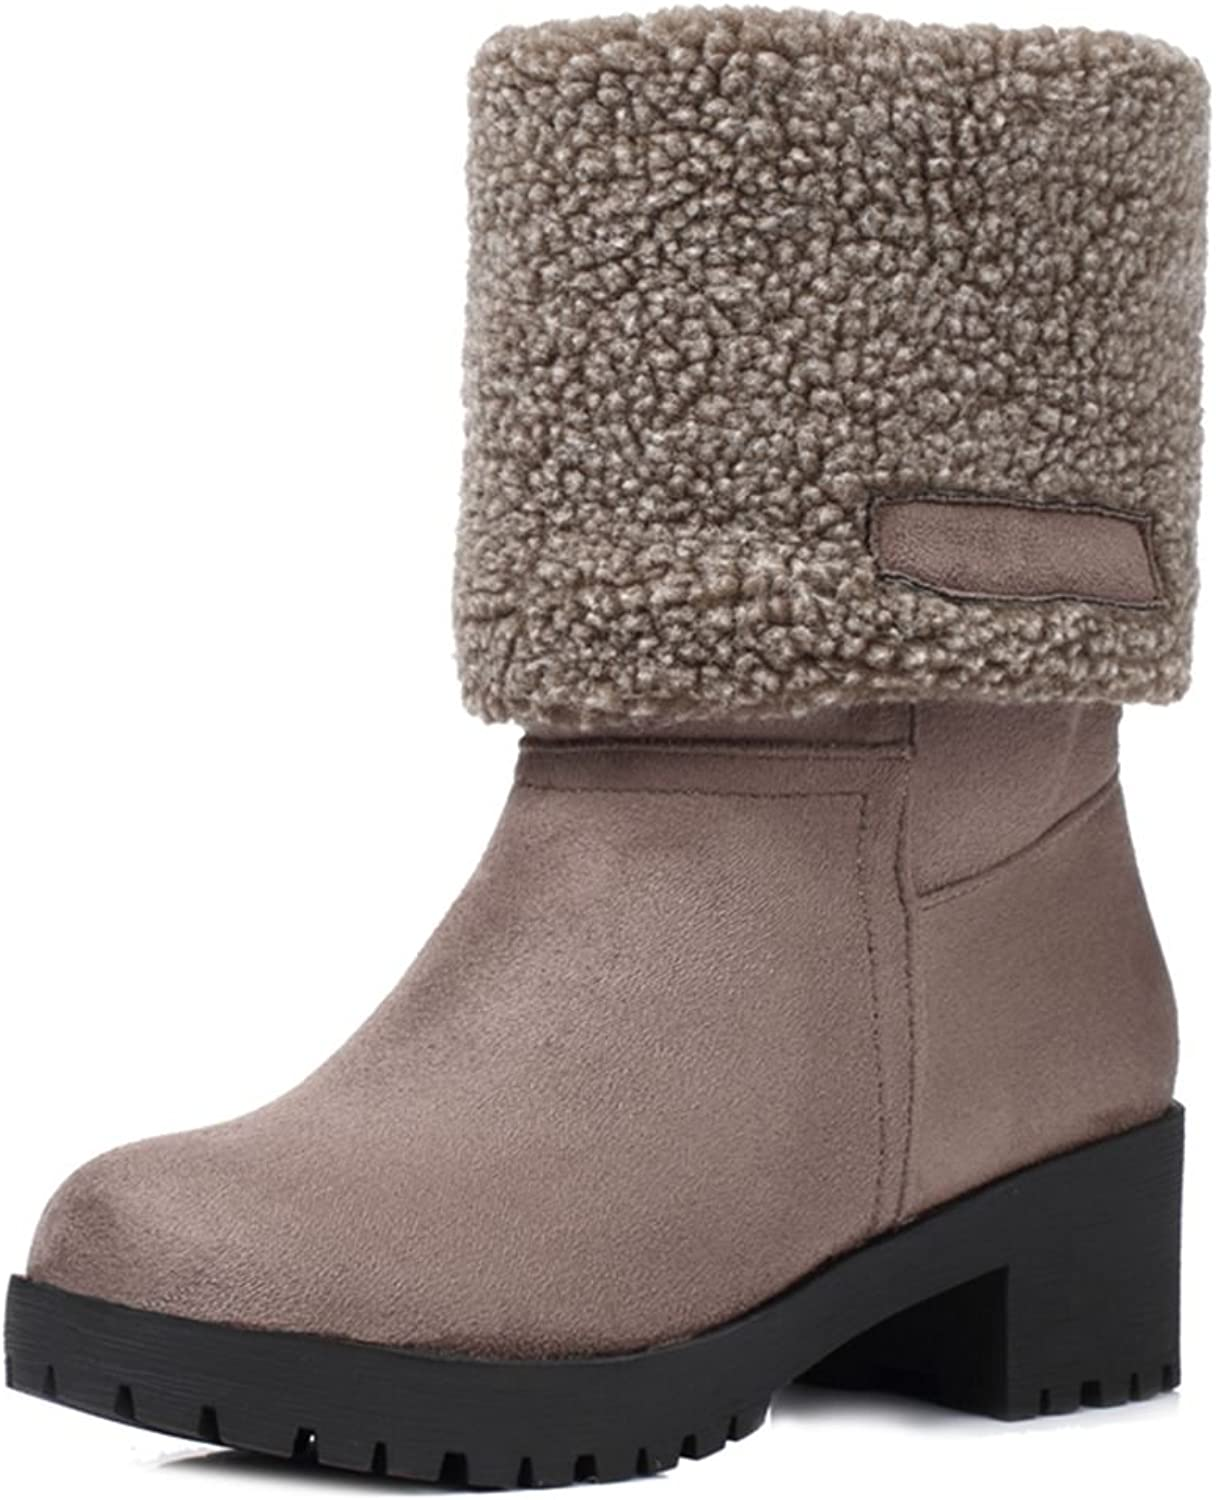 SaraIris Women's Ankle Booties Square Heels Platform Plush Warm Mid-Calf Boots for Winter